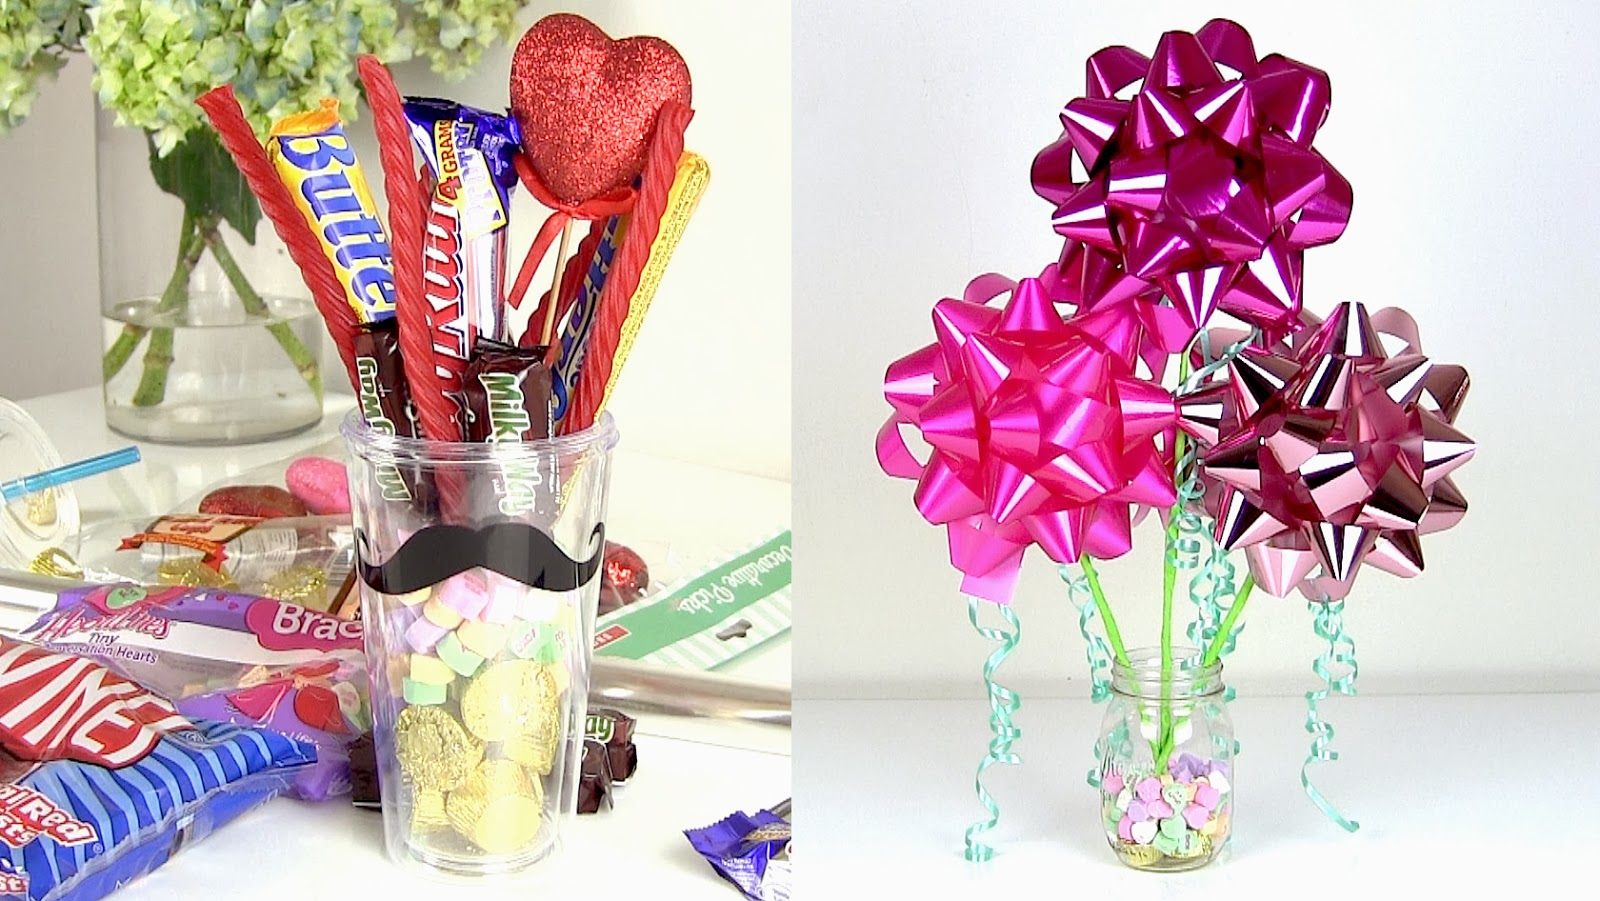 Urbanog blog last minute diy valentines candy bouquets for him last minute diy valentines candy bouquets for him and her izmirmasajfo Gallery